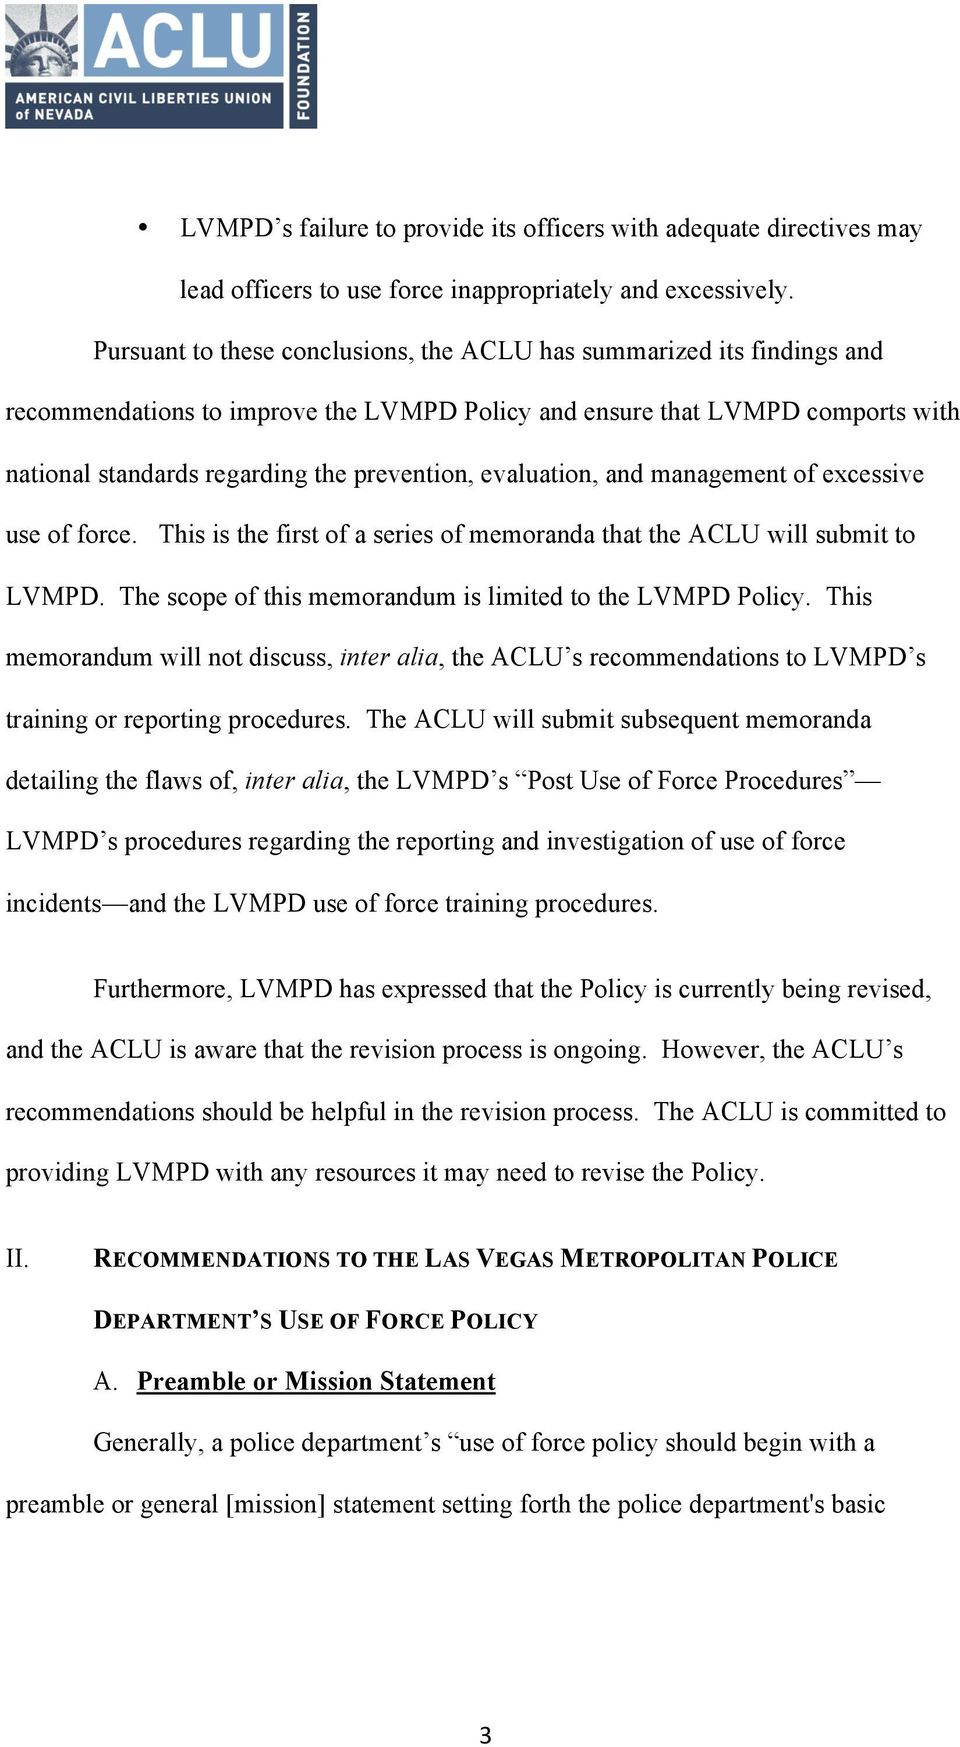 evaluation, and management of excessive use of force. This is the first of a series of memoranda that the ACLU will submit to LVMPD. The scope of this memorandum is limited to the LVMPD Policy.